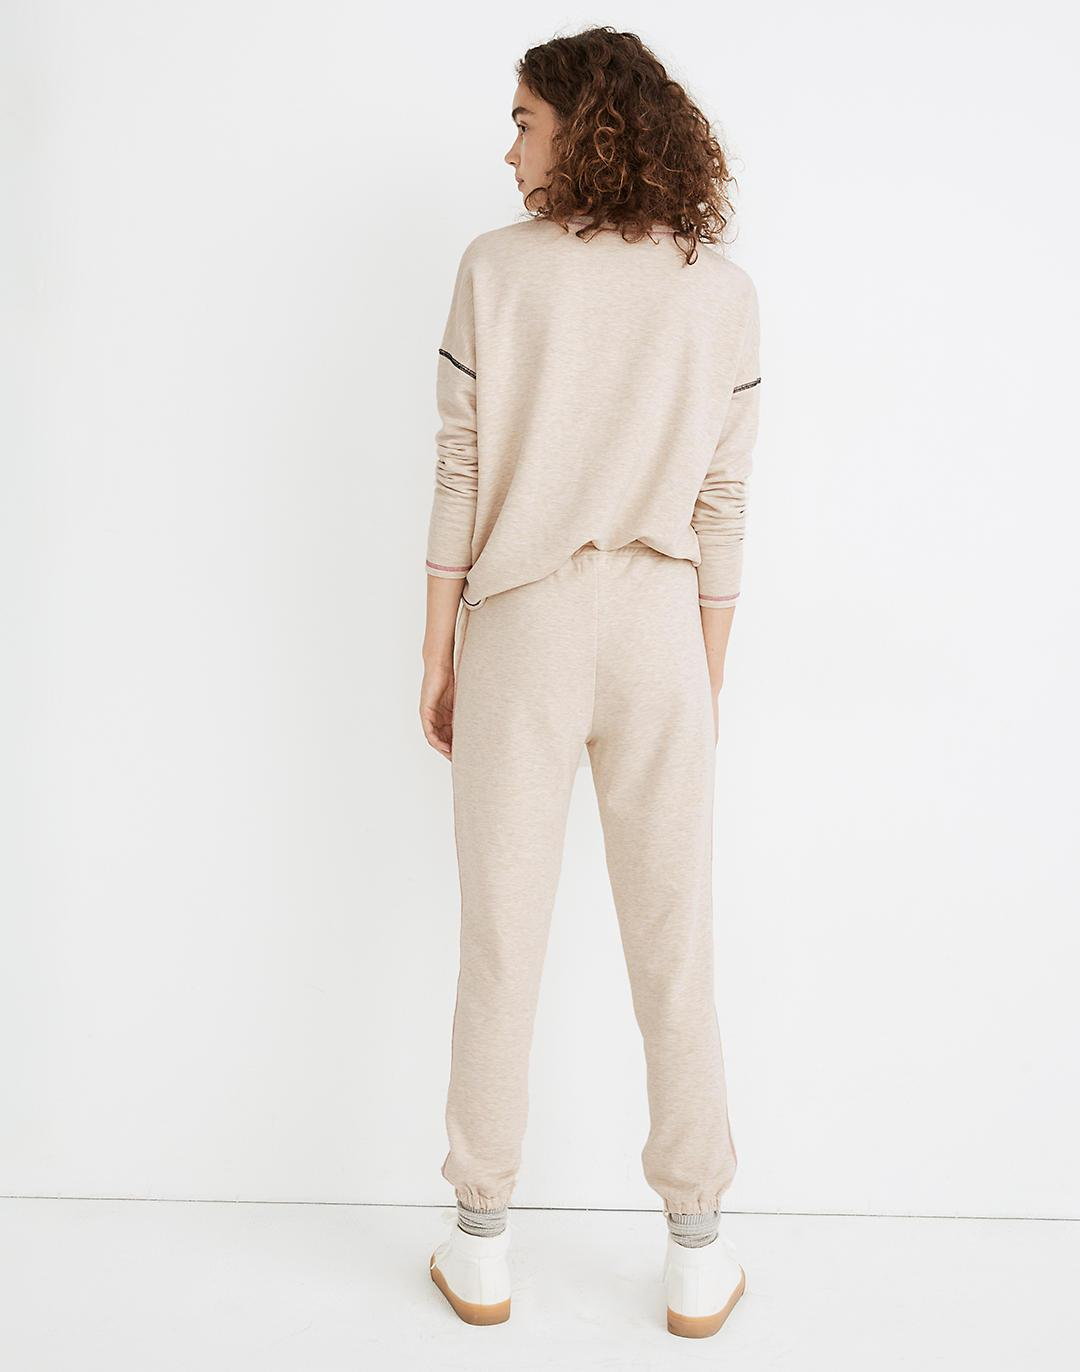 MWL Superbrushed Contrast-Stitched Easygoing Sweatpants 2